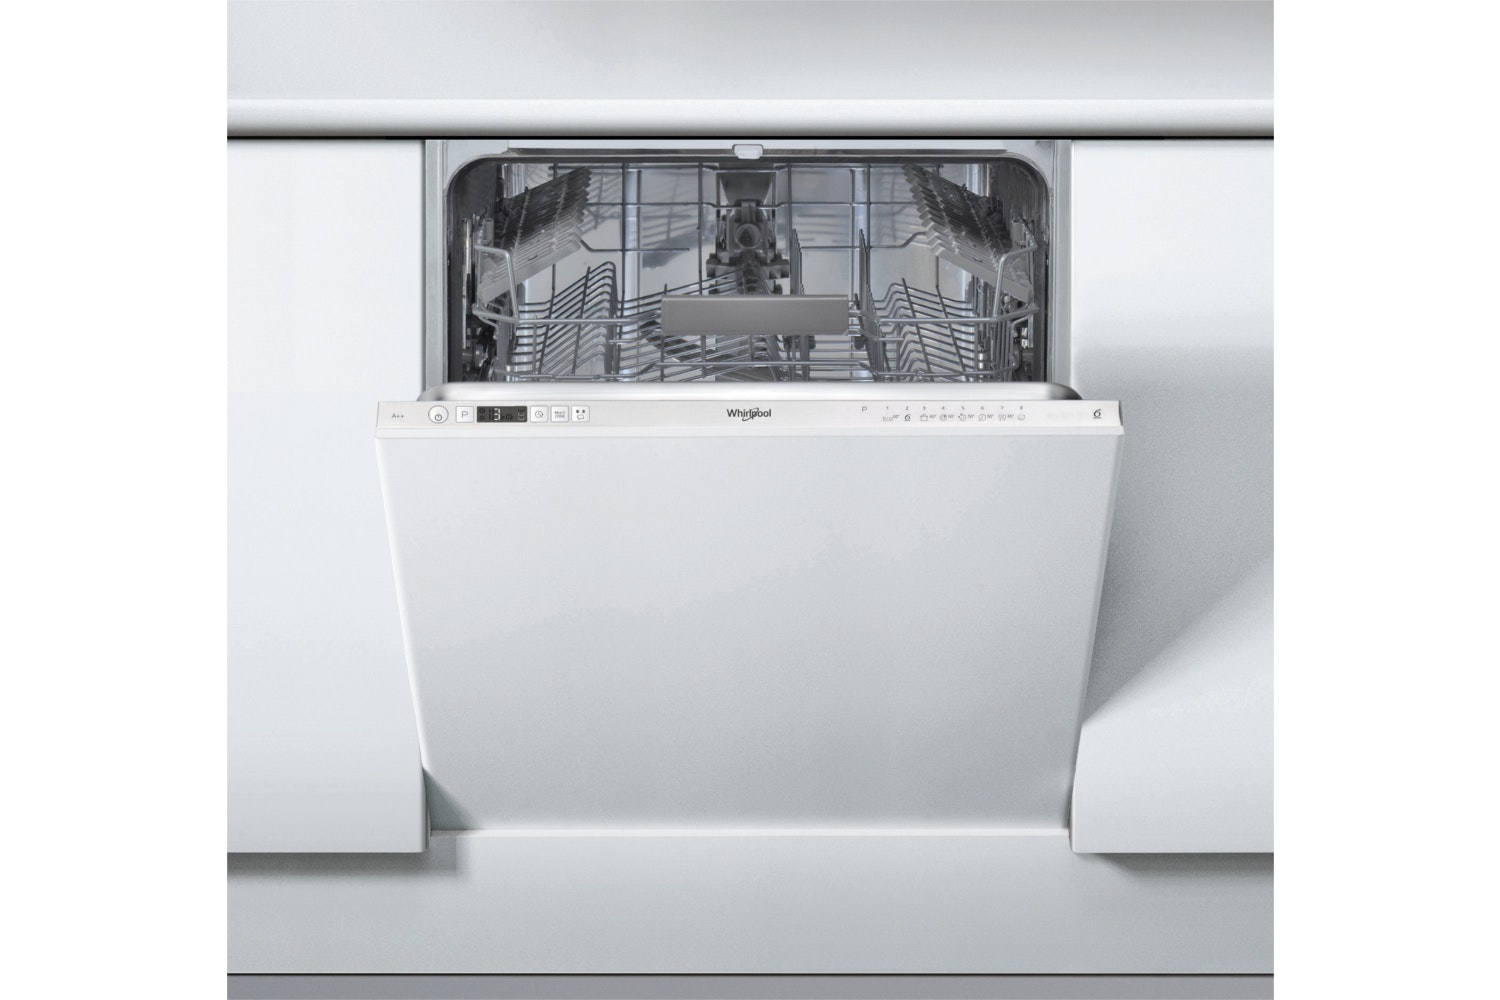 Whirlpool Fully Integrated Dishwasher | 14 Place | WIC3C26